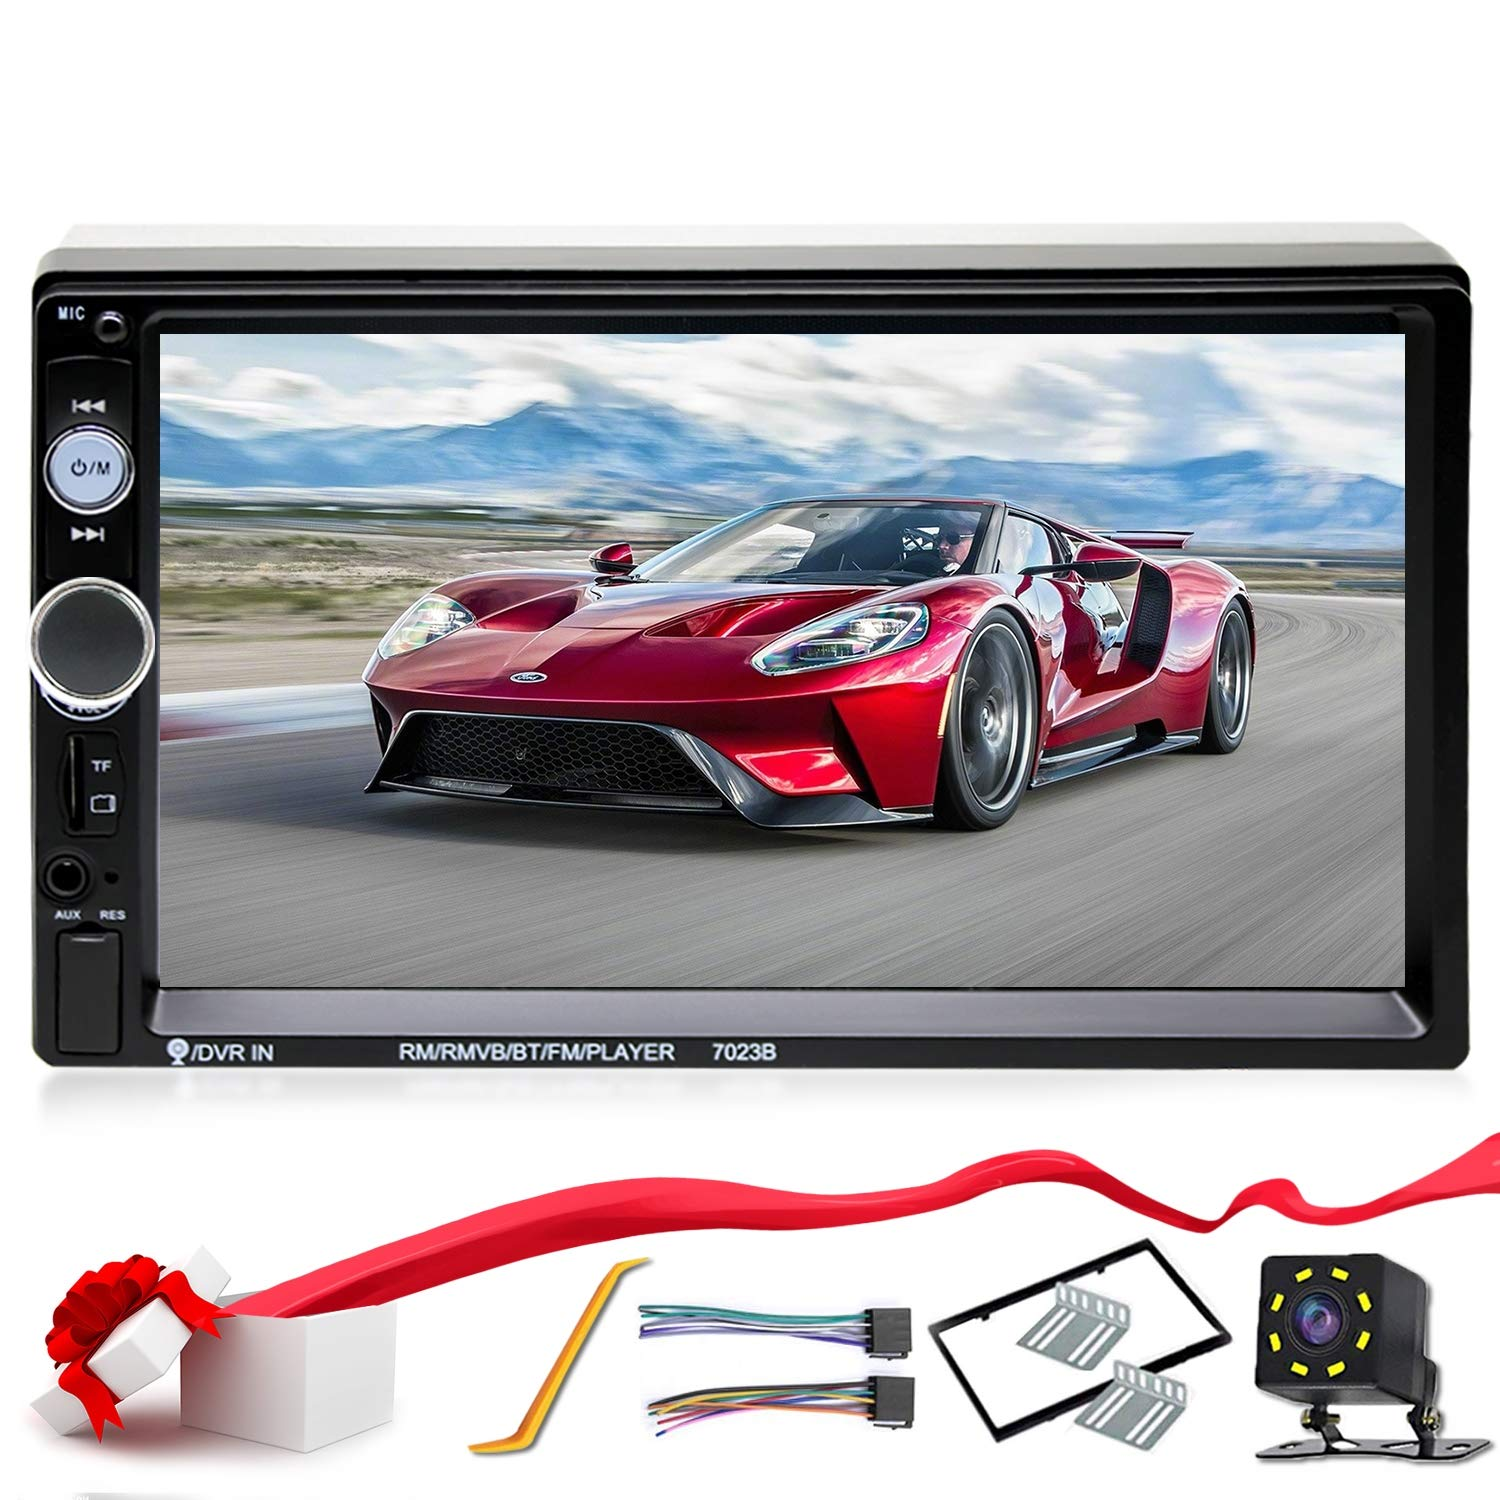 Double Din Car Stereo in-Dash Compatible with Bluetooth Touch Screen 7 inch with Rear-View Camera,Video MP5/4/3 Player, Radio FM, Car Stereo Receiver, Mirror Link, Caller ID by Yakalla